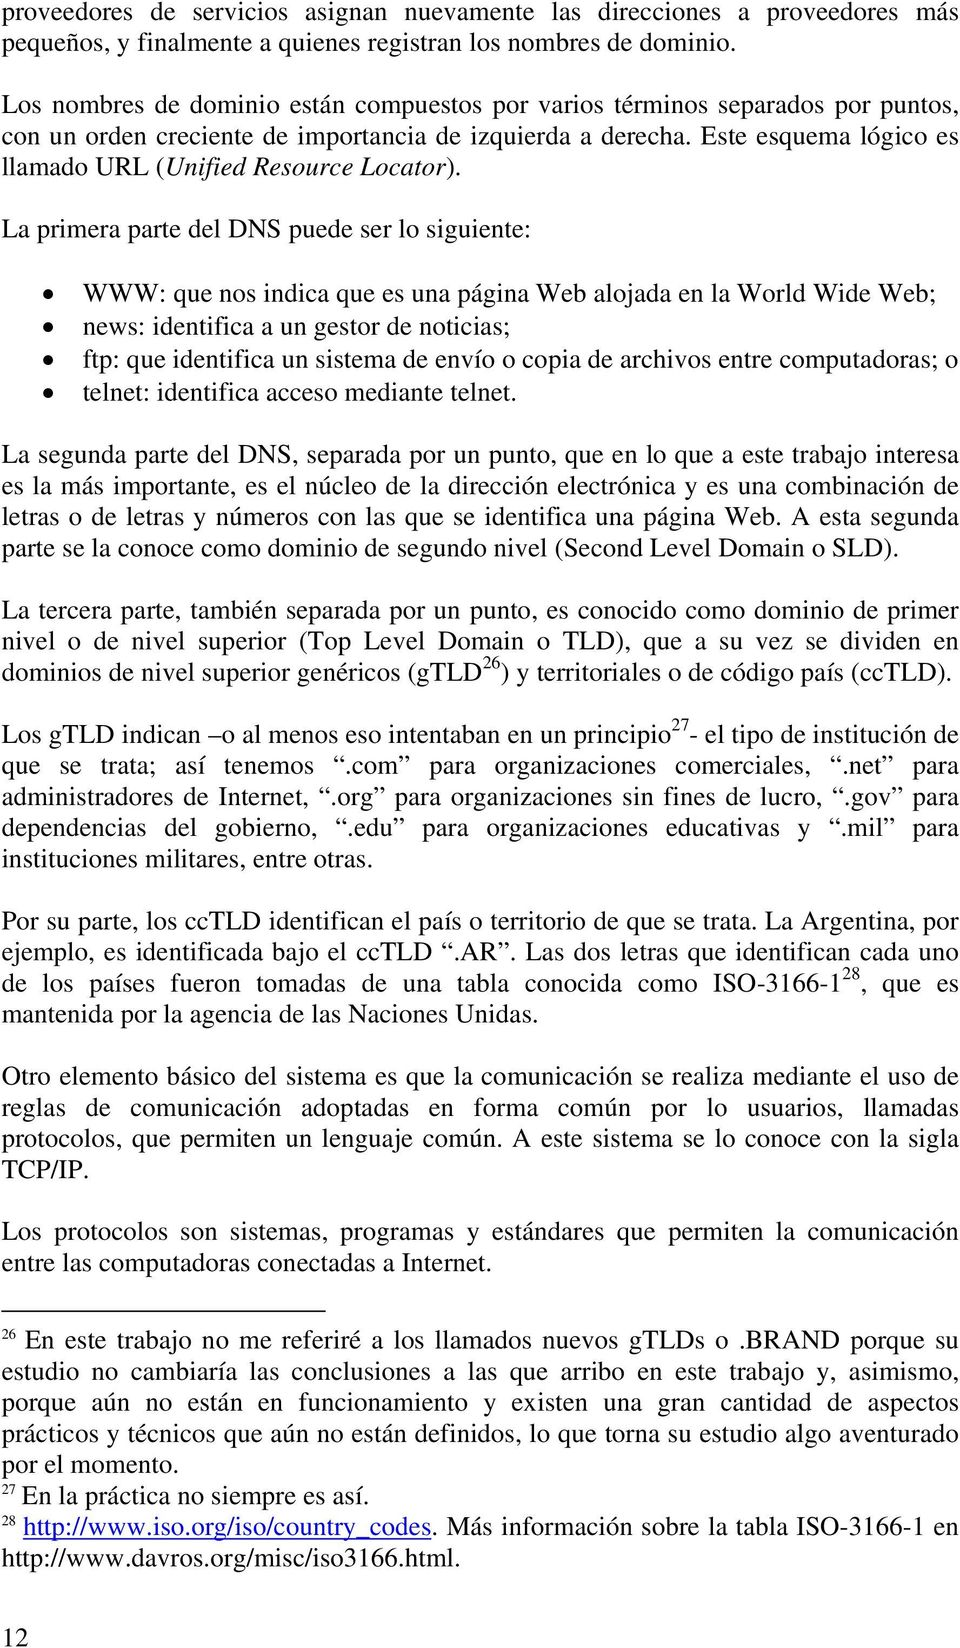 Este esquema lógico es llamado URL (Unified Resource Locator).